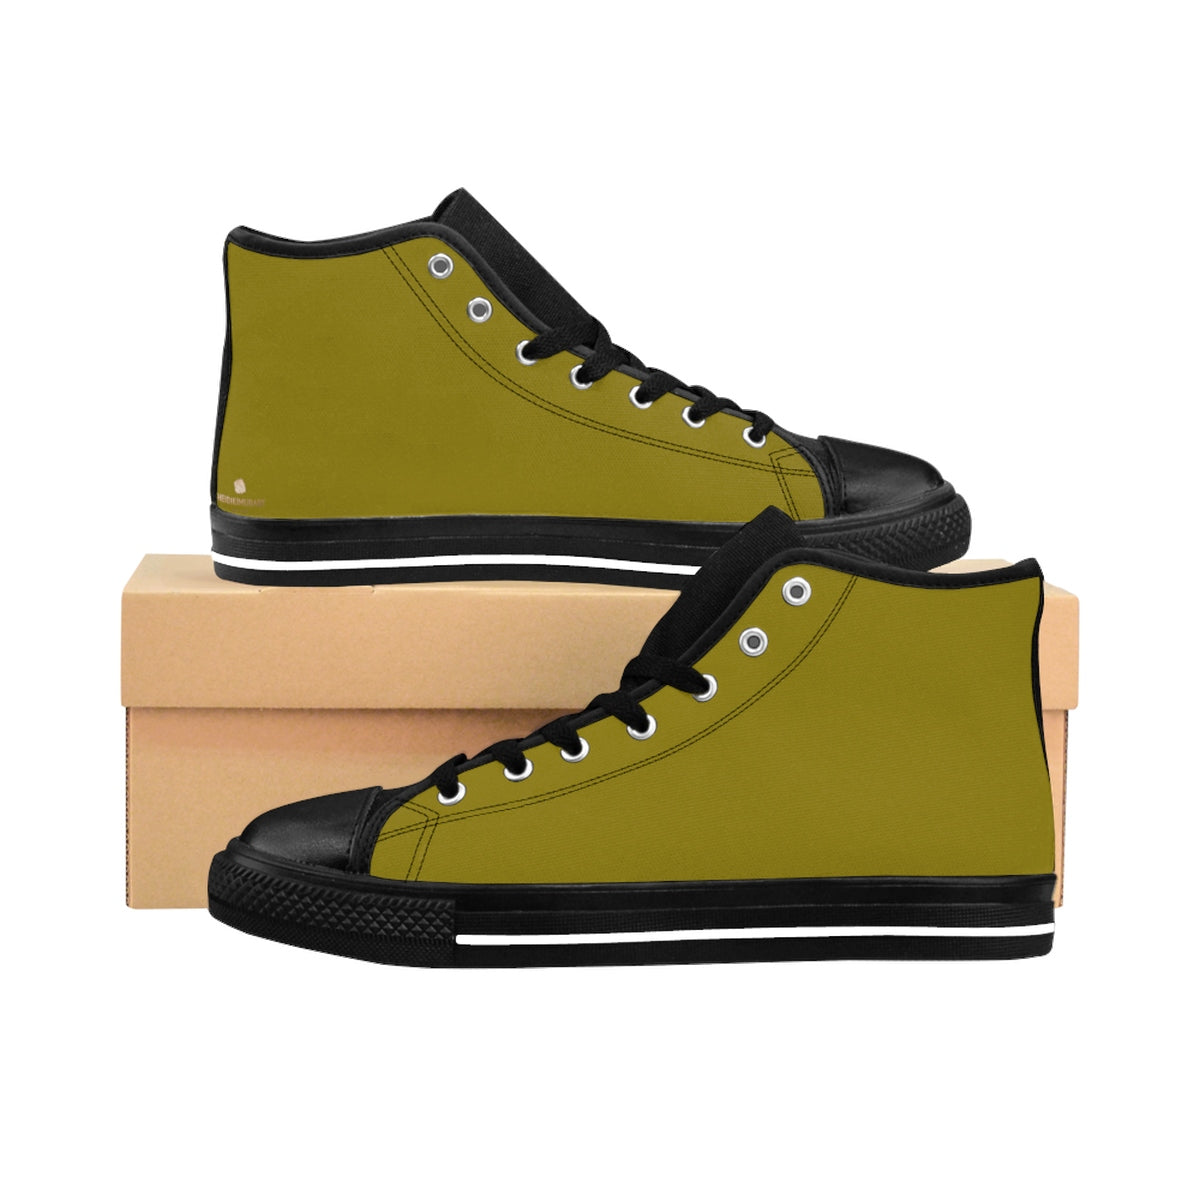 Olive Green Solid Color Women's High Top Sneakers Running Shoes (US Size 6-12)-Women's High Top Sneakers-US 9-Heidi Kimura Art LLCOlive Green Women's Sneakers, Modern Classic Sporty Olive Green Solid Color Women's High Top Sneakers Running Shoes (US Size 6-12)